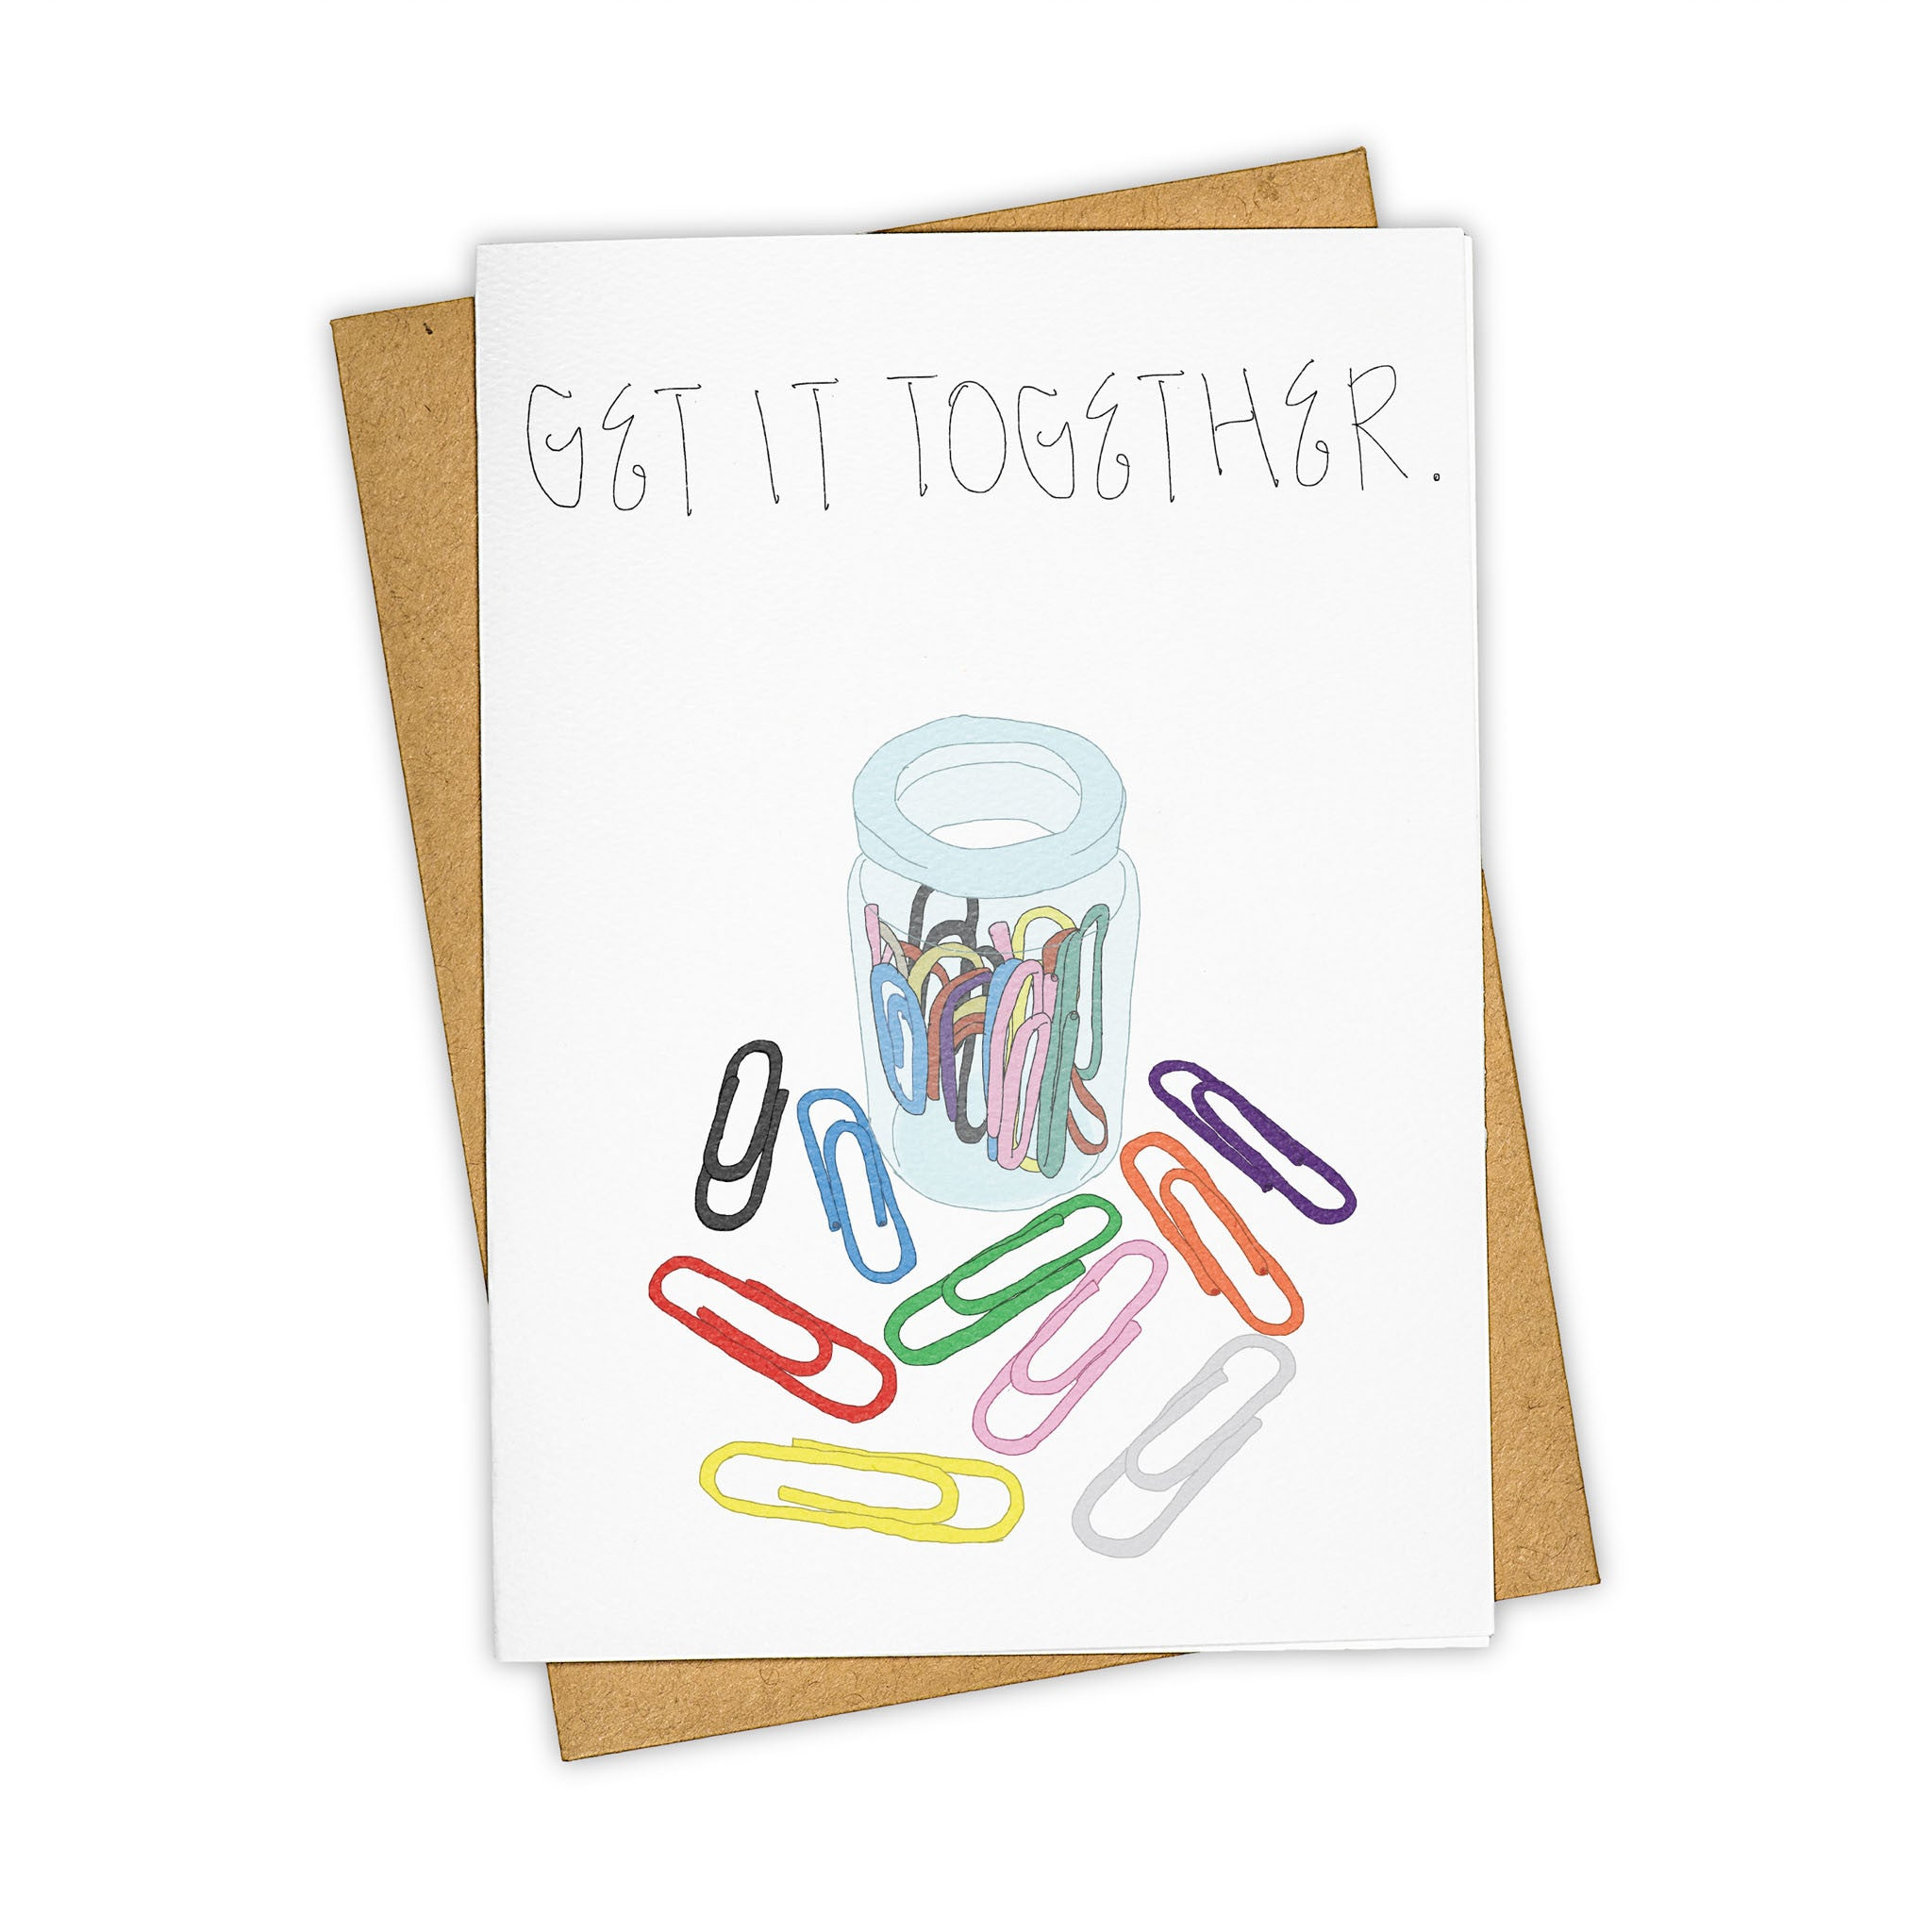 TAY HAM New Job Paper Clips Greeting Card